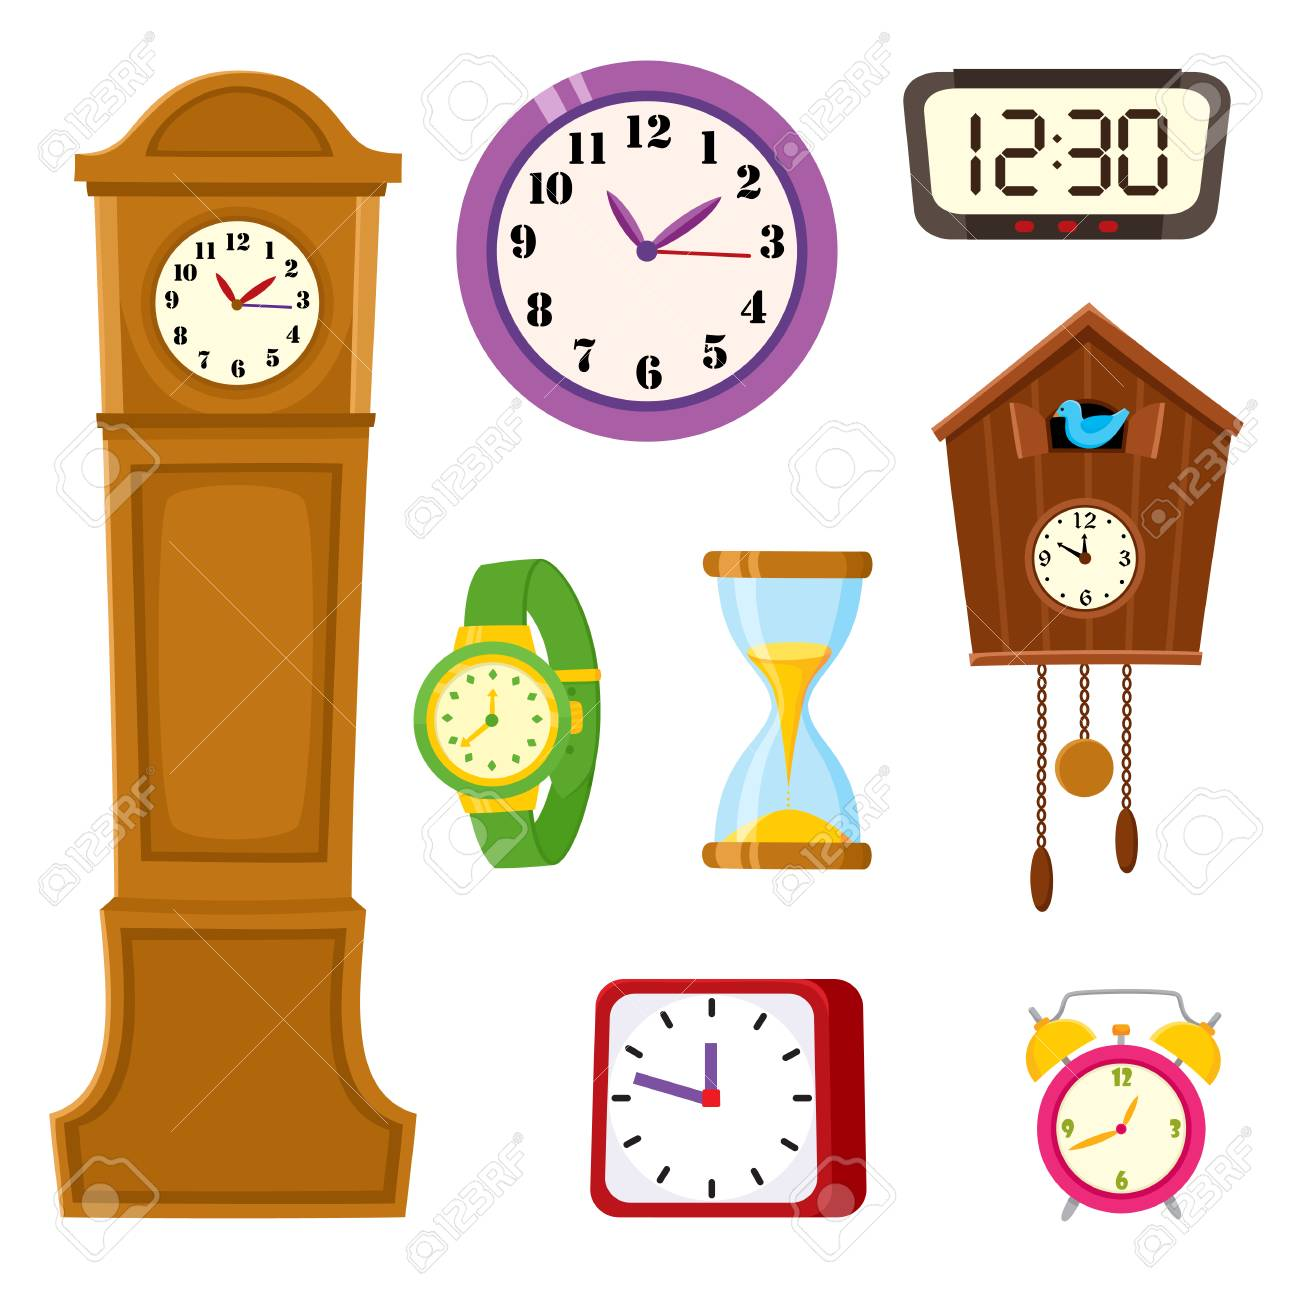 Set of clocks and watches - alarm, tower, cuckoo, wristwatch, hourglass, cartoon vector illustration isolated on white background. Set of alarm and cuckoo clock, hourglass, tower and wristwatch icons. - 93755043